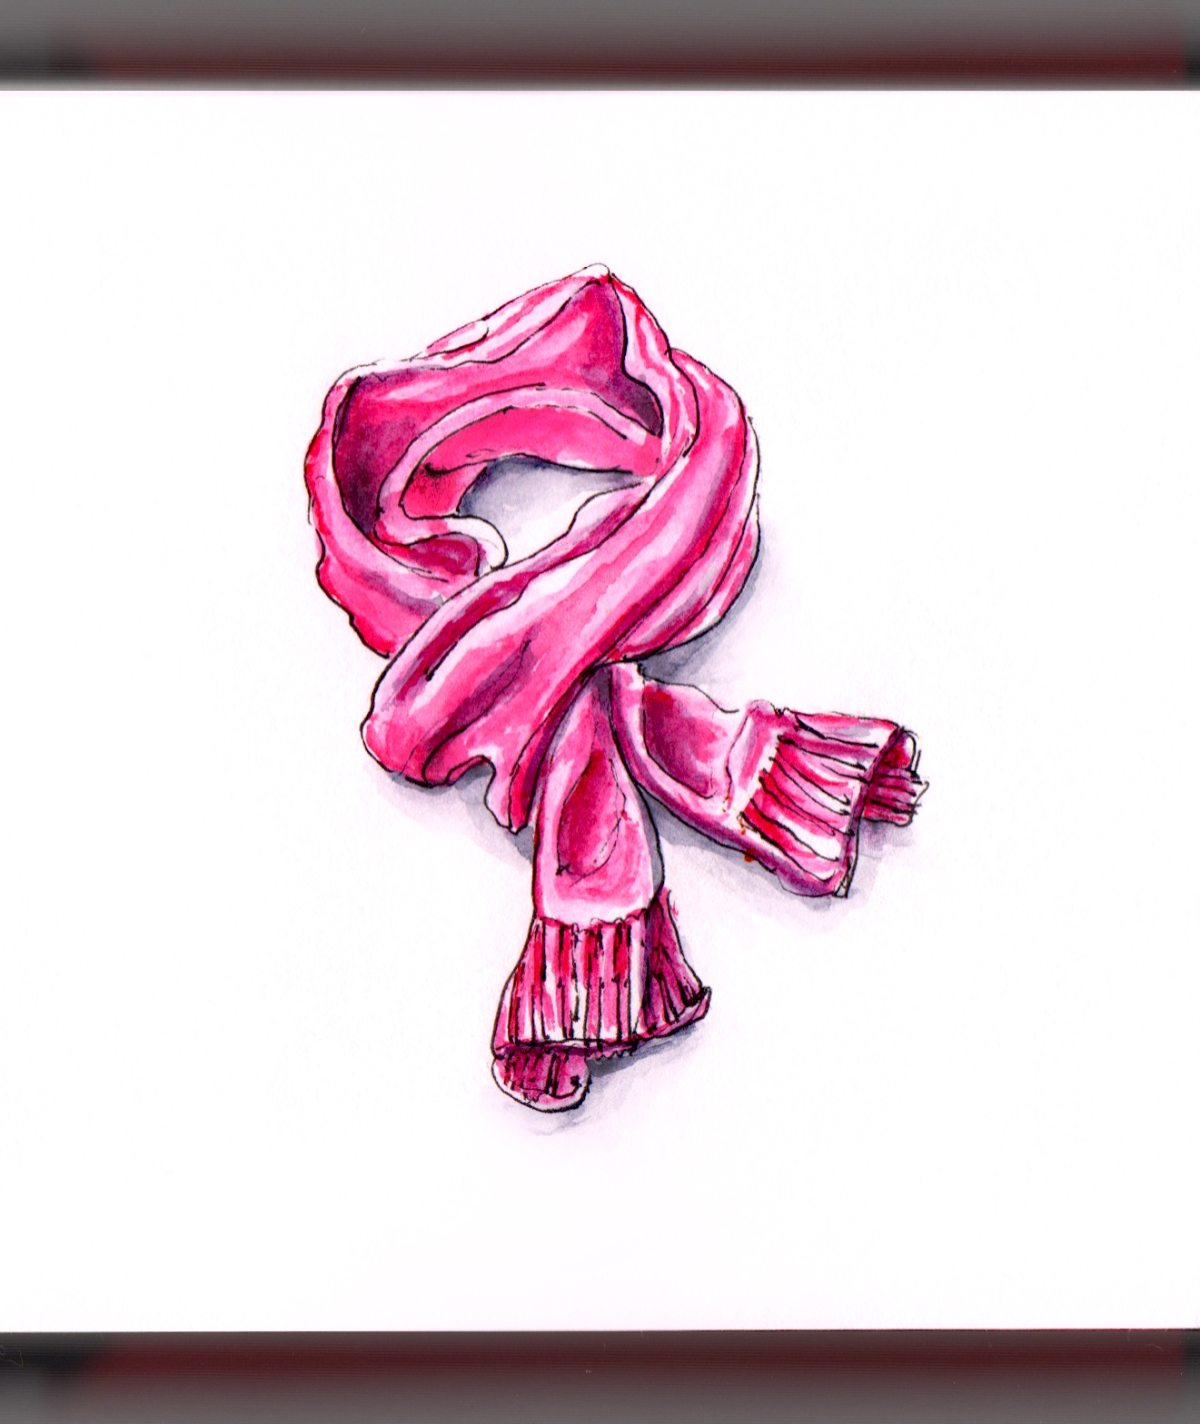 Day 27 - Winter Scarf Weather Pink Scarf on White Background